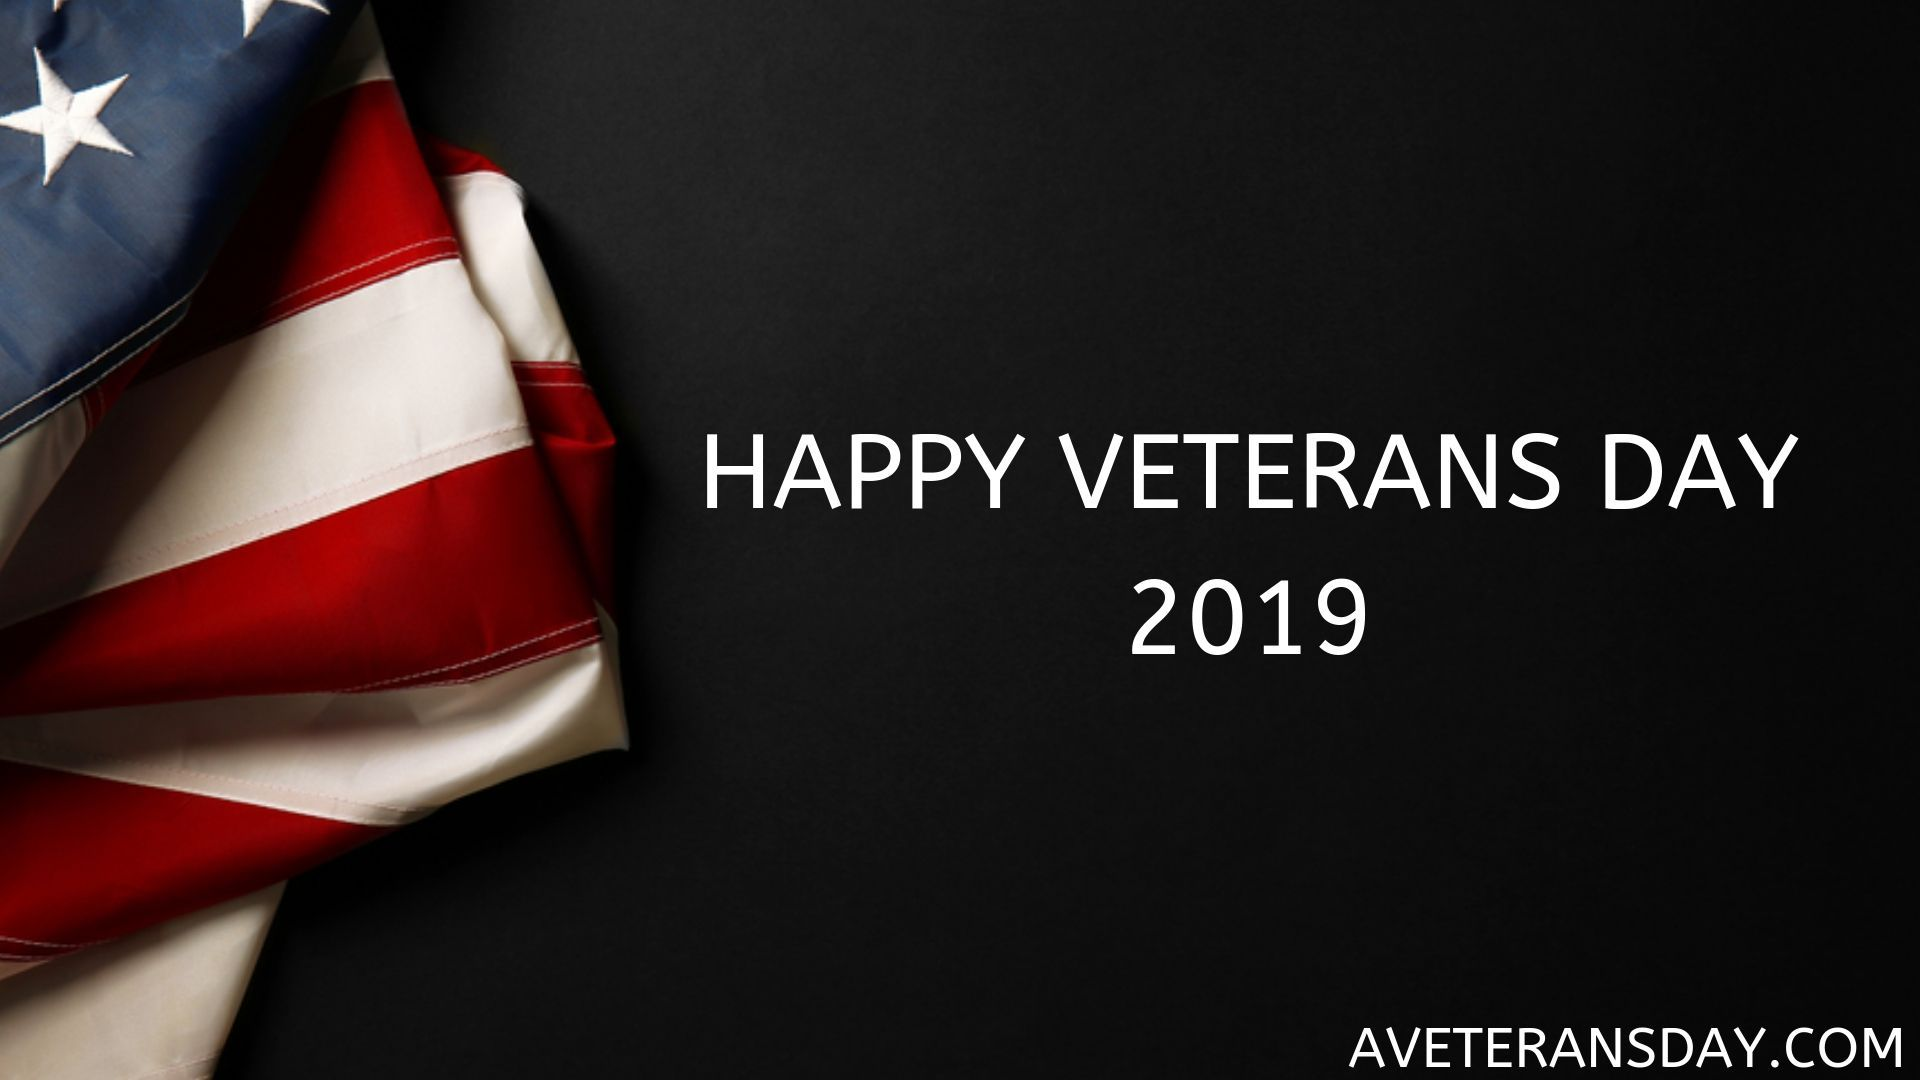 Pin by Happy Veterans Day 2019 on Veterans Day 2019 Quotes